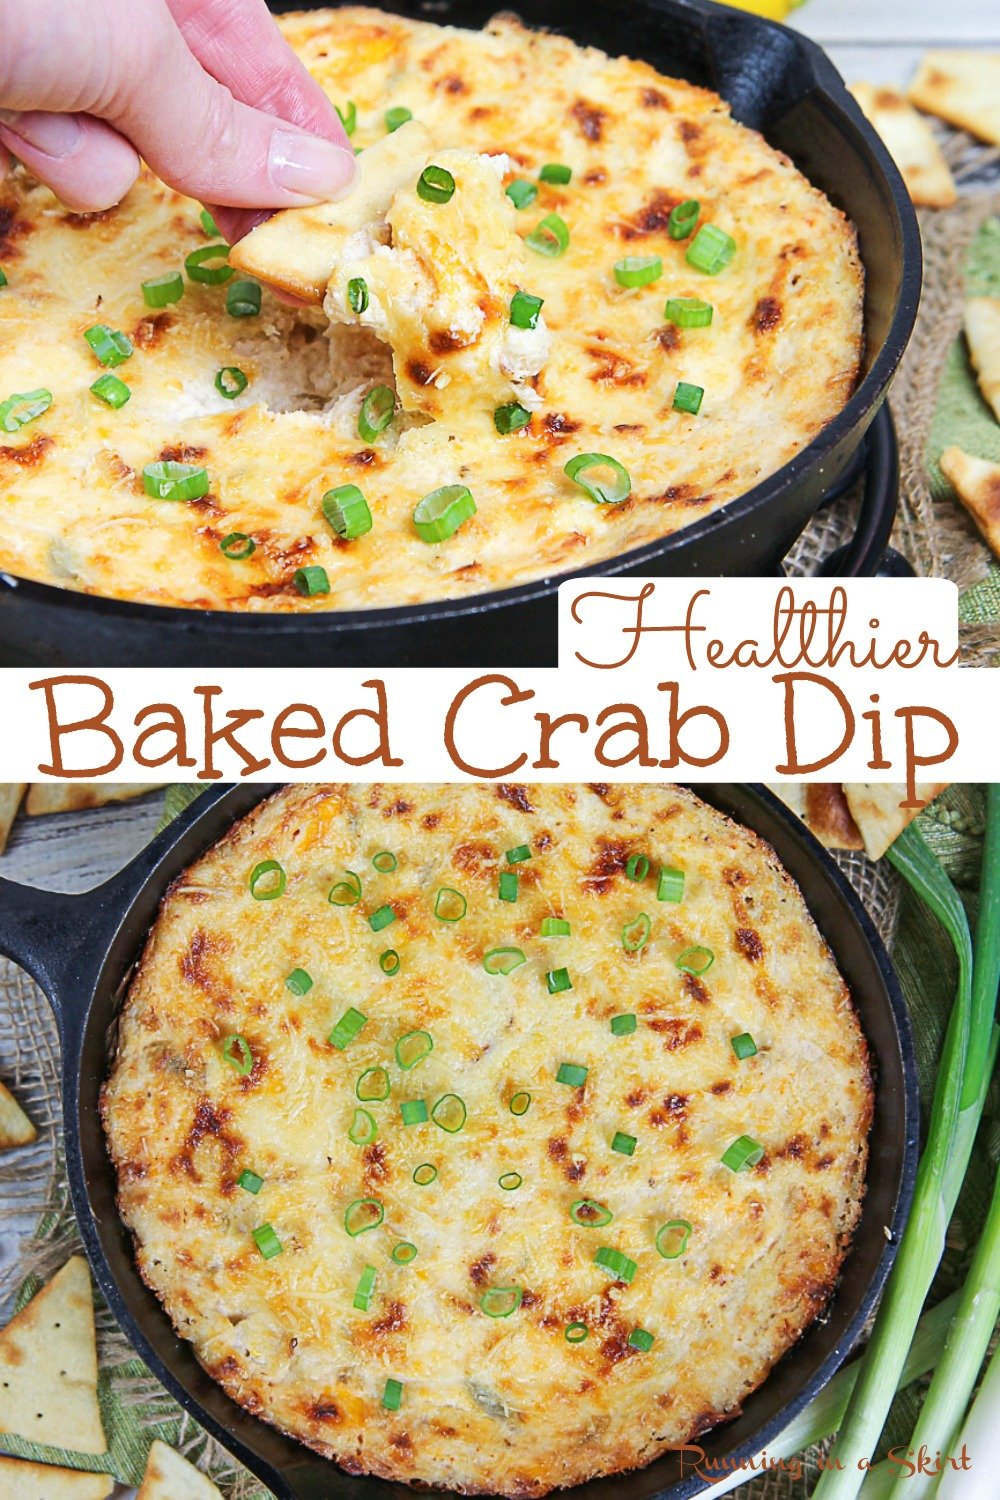 Hot Crab Dip recipe - The BEST with healthy swaps without sacrificing TASTE! Cheesy, easy, and delicious. This addictive recipe is baked with cream cheese and is filled with warm lump crab meat. Simple and EASY to make for appetizers. Pescatarian, Low Carb, Gluten Free / Running in a Skirt #superbowl #healthyliving #crabdip #pescatarian #recipe via @juliewunder